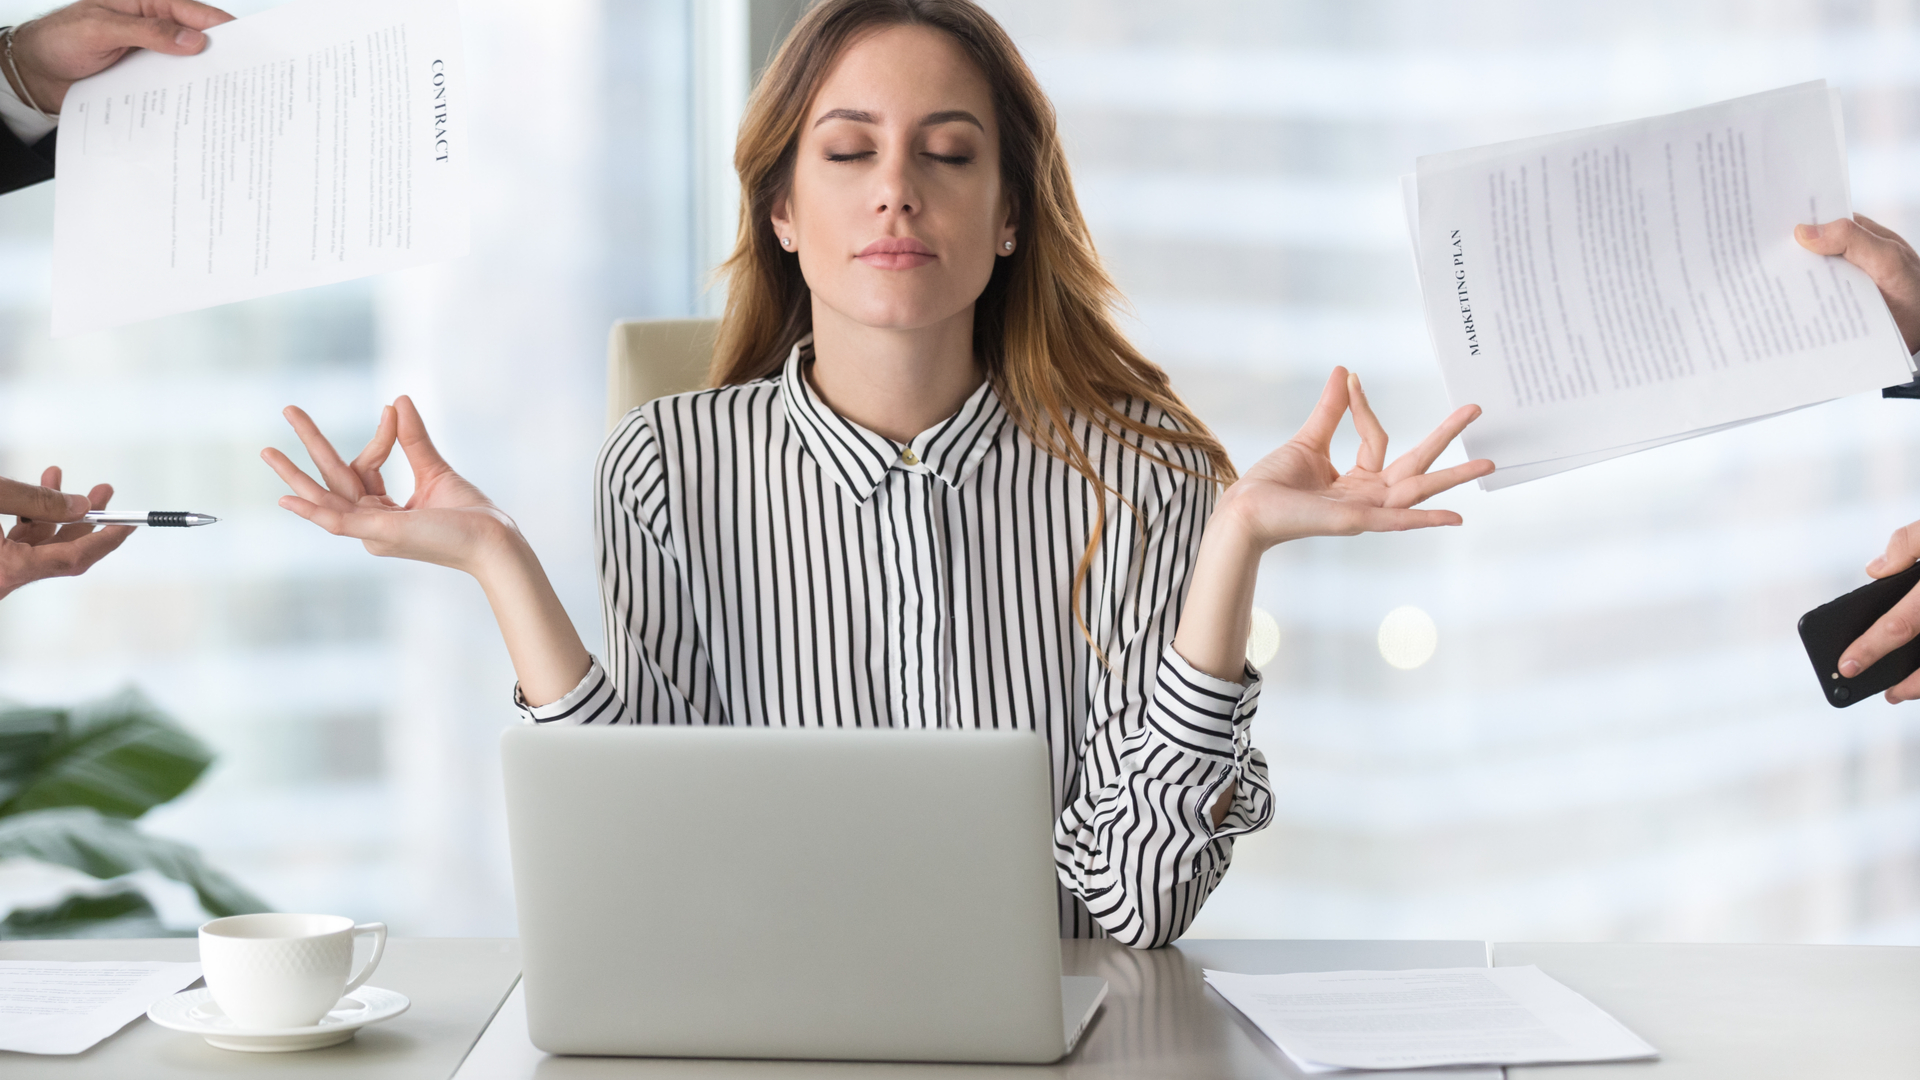 Calm female executive meditating in front of a laptop